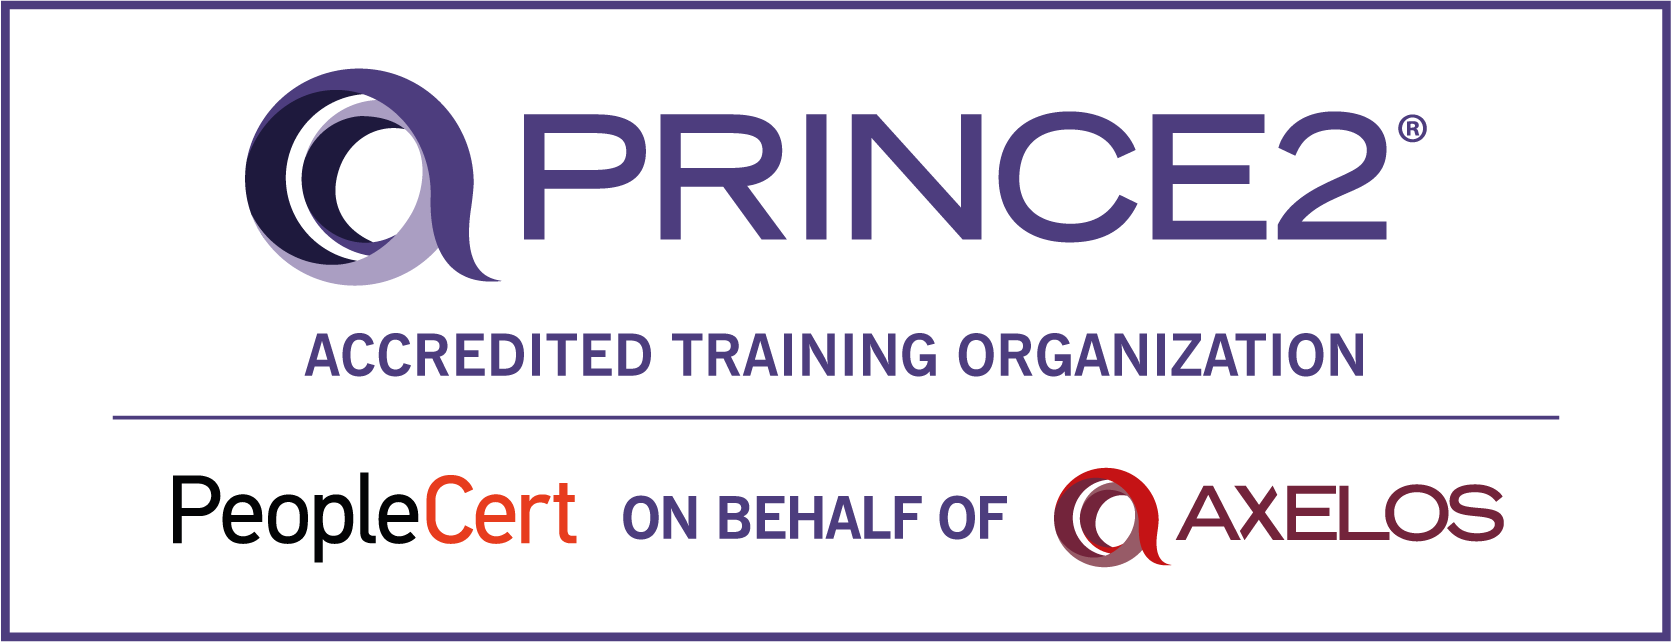 prince2 formation